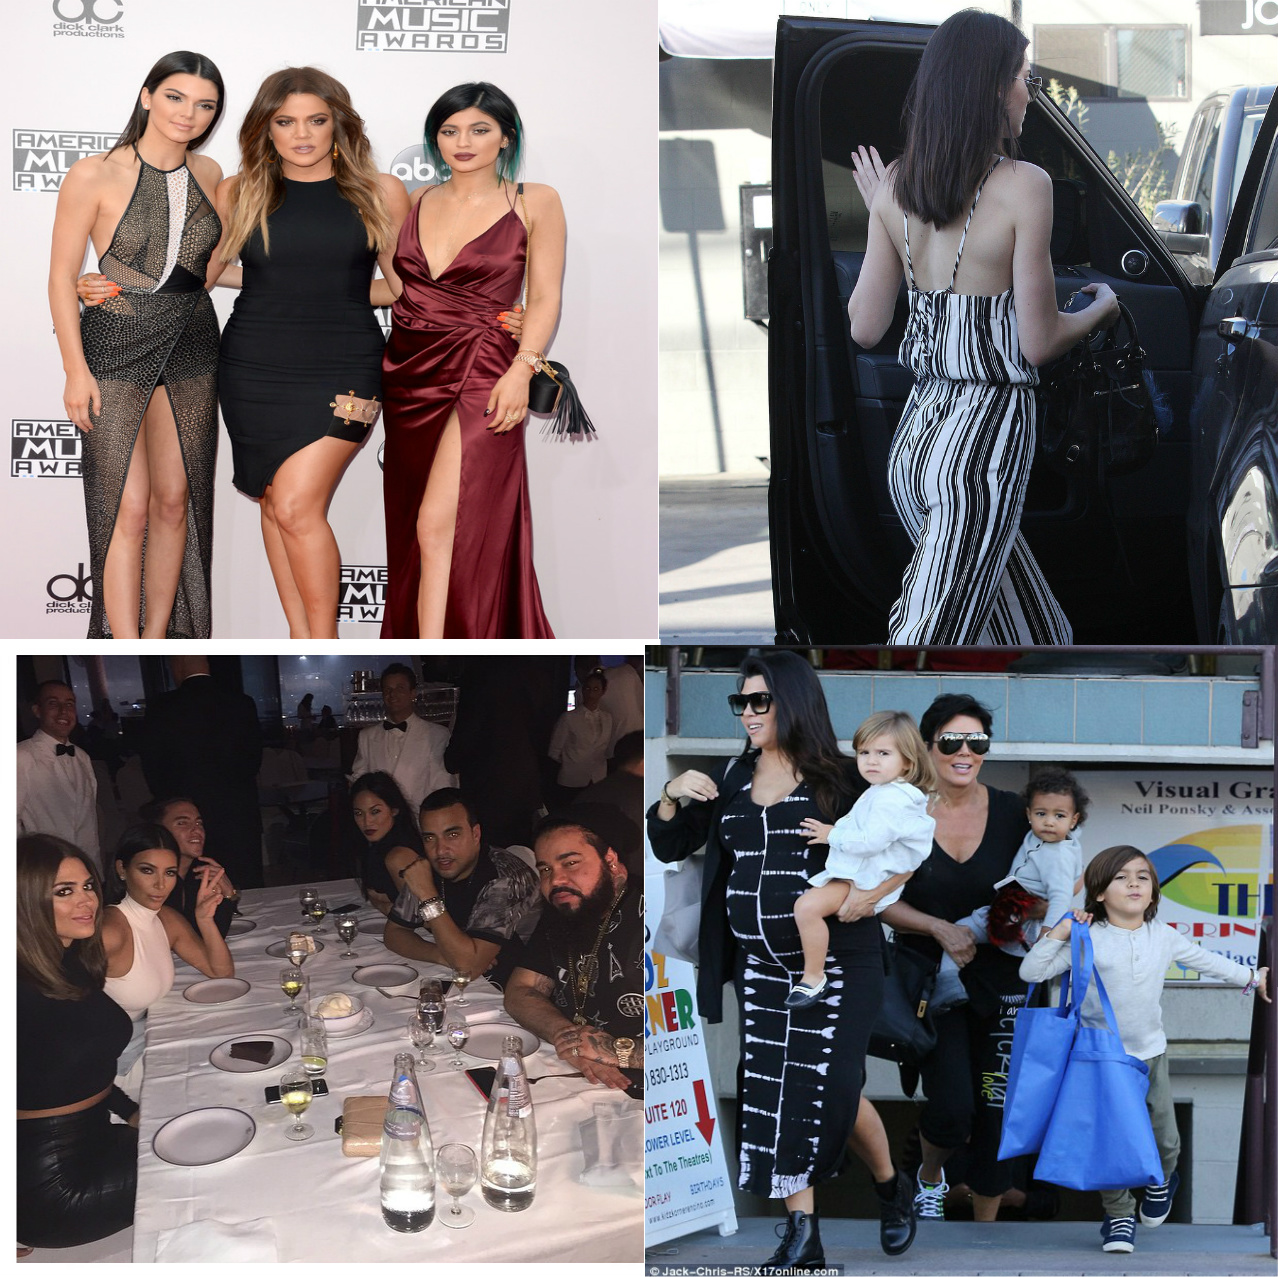 {KUWTK} KRIS & KOURTNEY w/NORTH & PENELOPE,  KHLOE, KENDALL & KYLIE in L.A and at the AMAs, KIM w/Friends in Dubai UAE